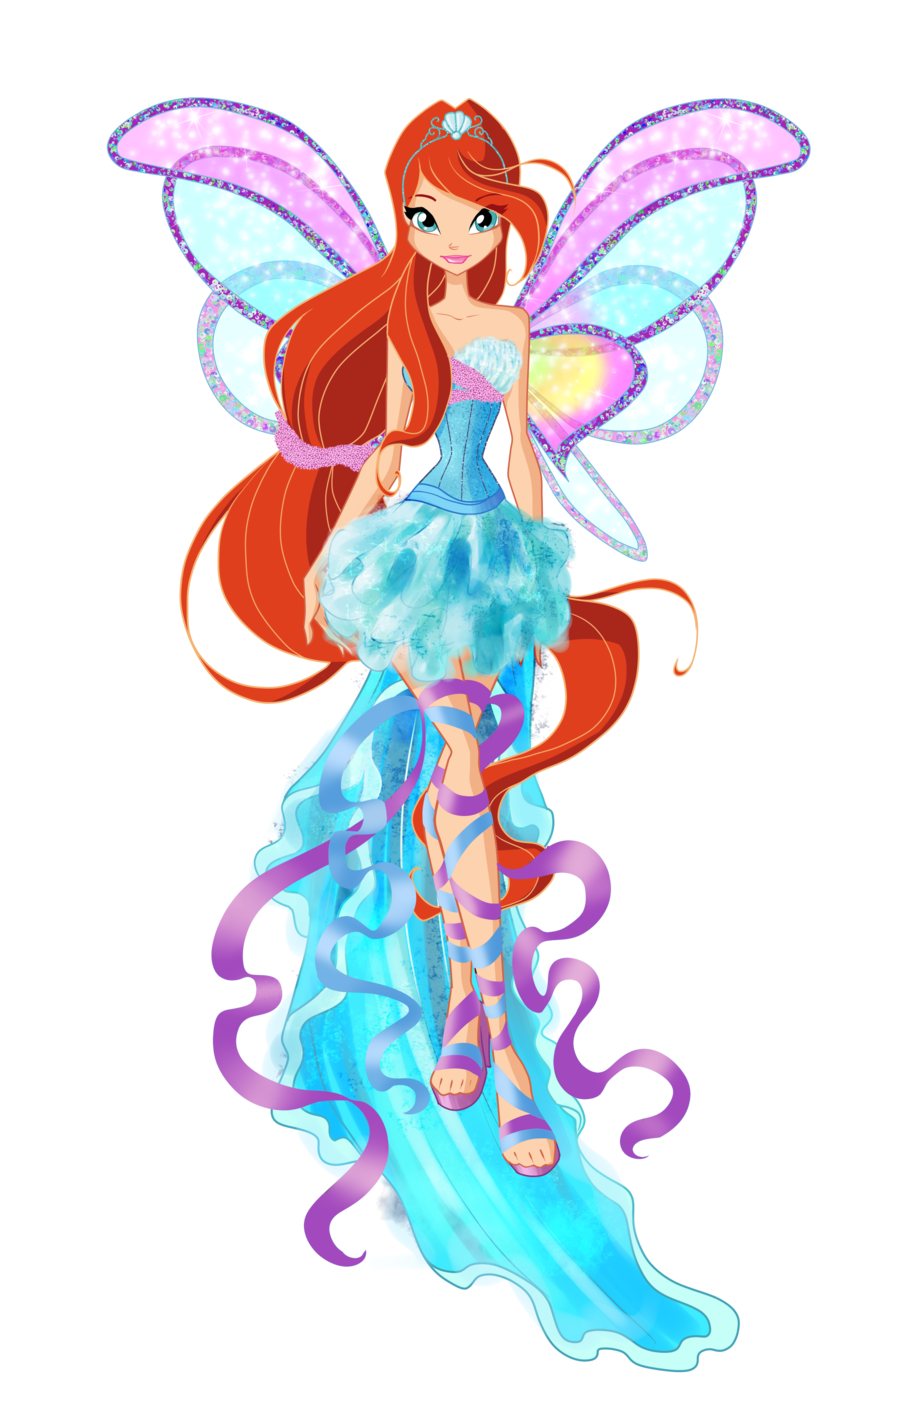 Winx Club Fairies: Bloom Harmonix Collection